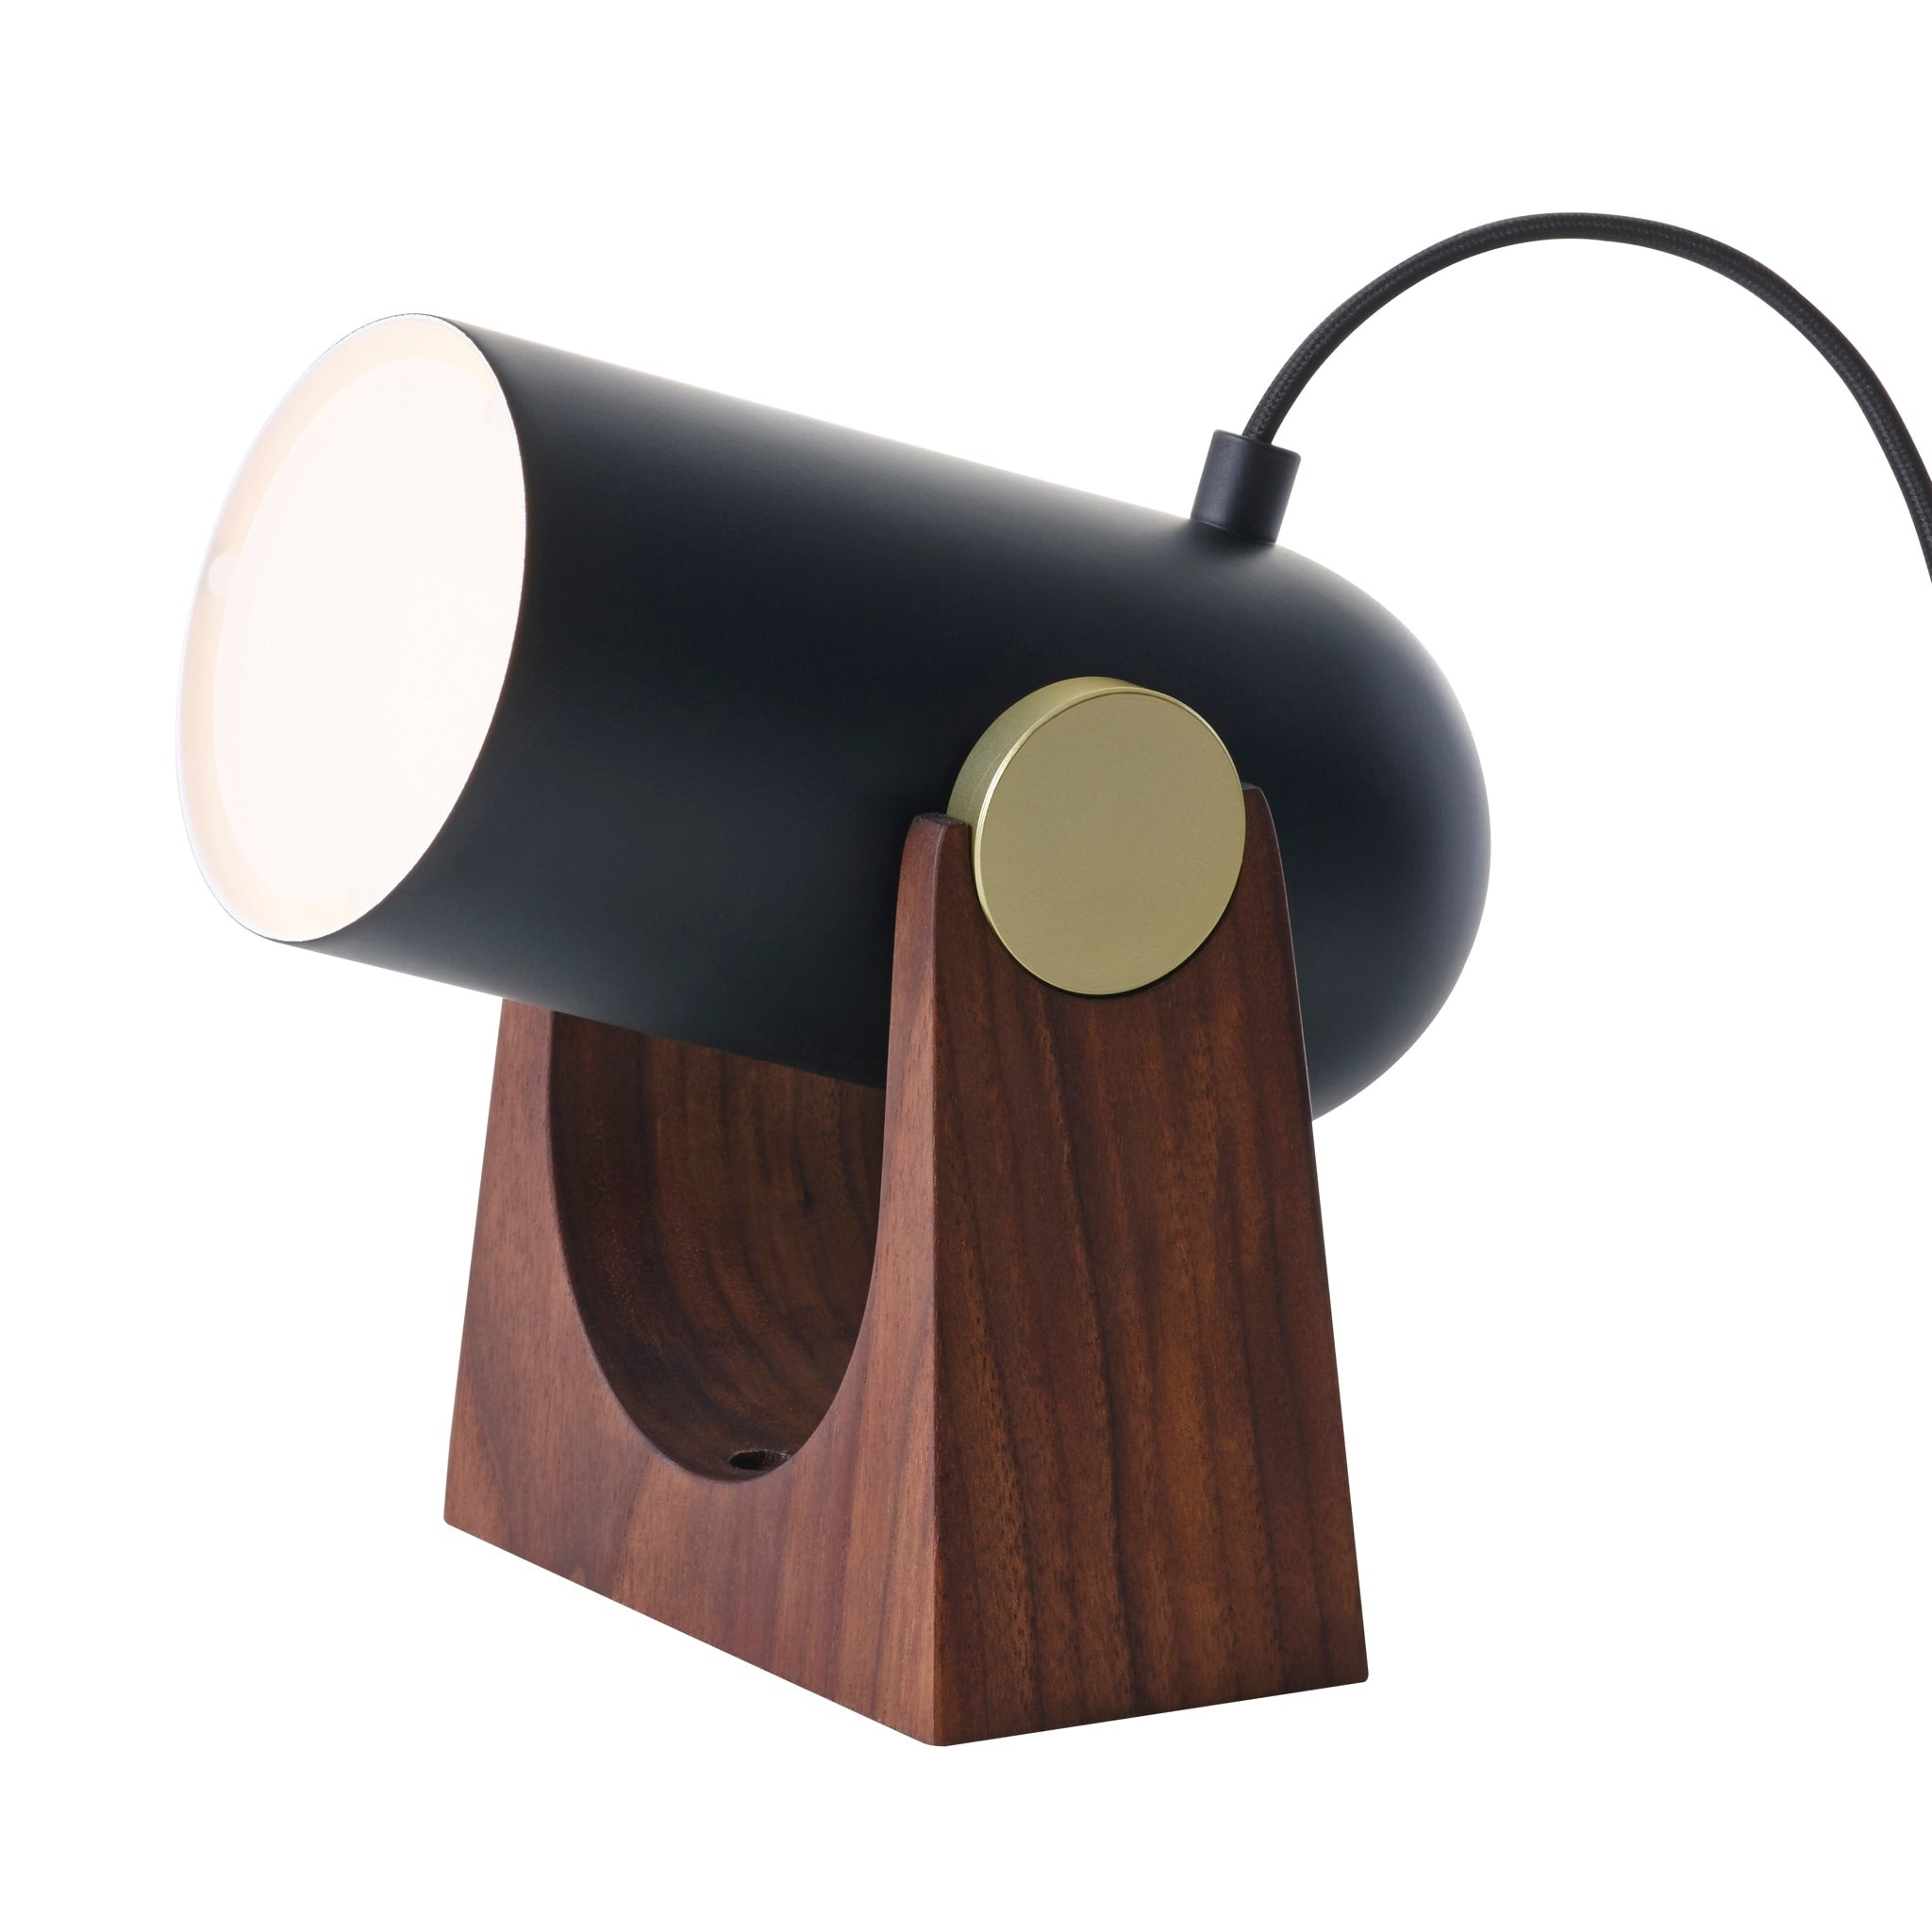 Carronade Table/Wall Lamp by Le Klint